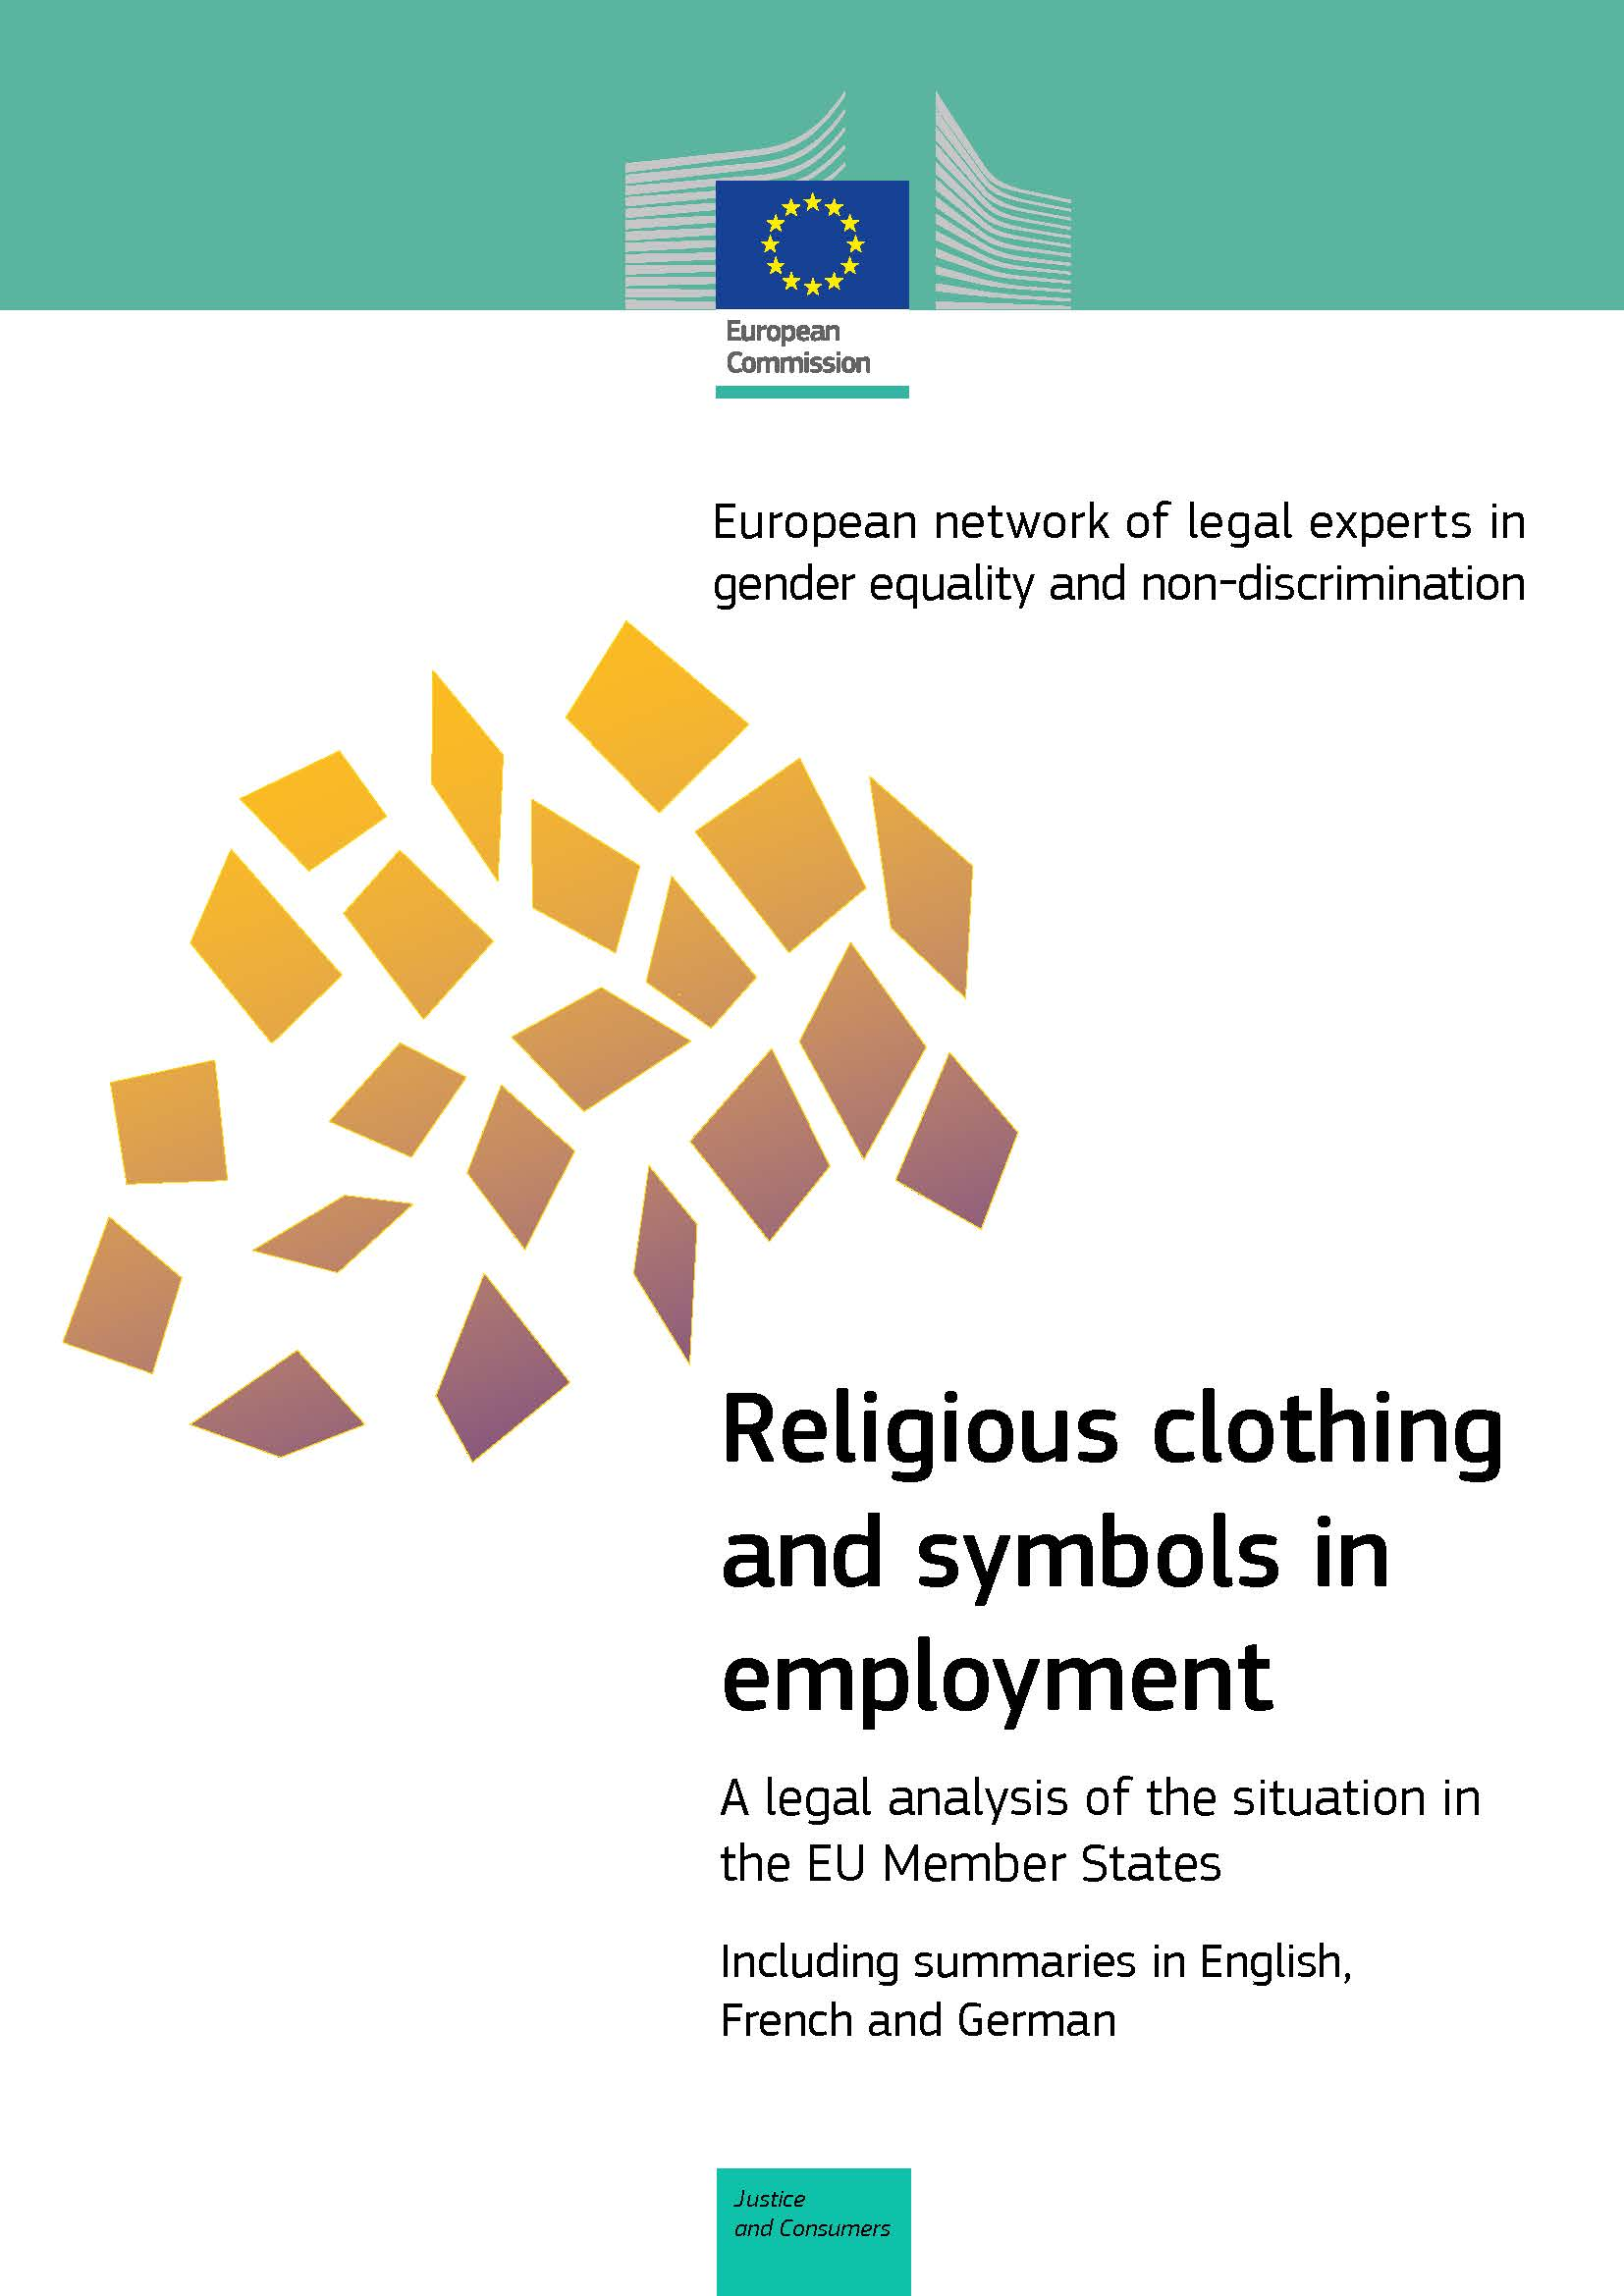 Religious clothing and symbols in employment (PDF 928 kB)